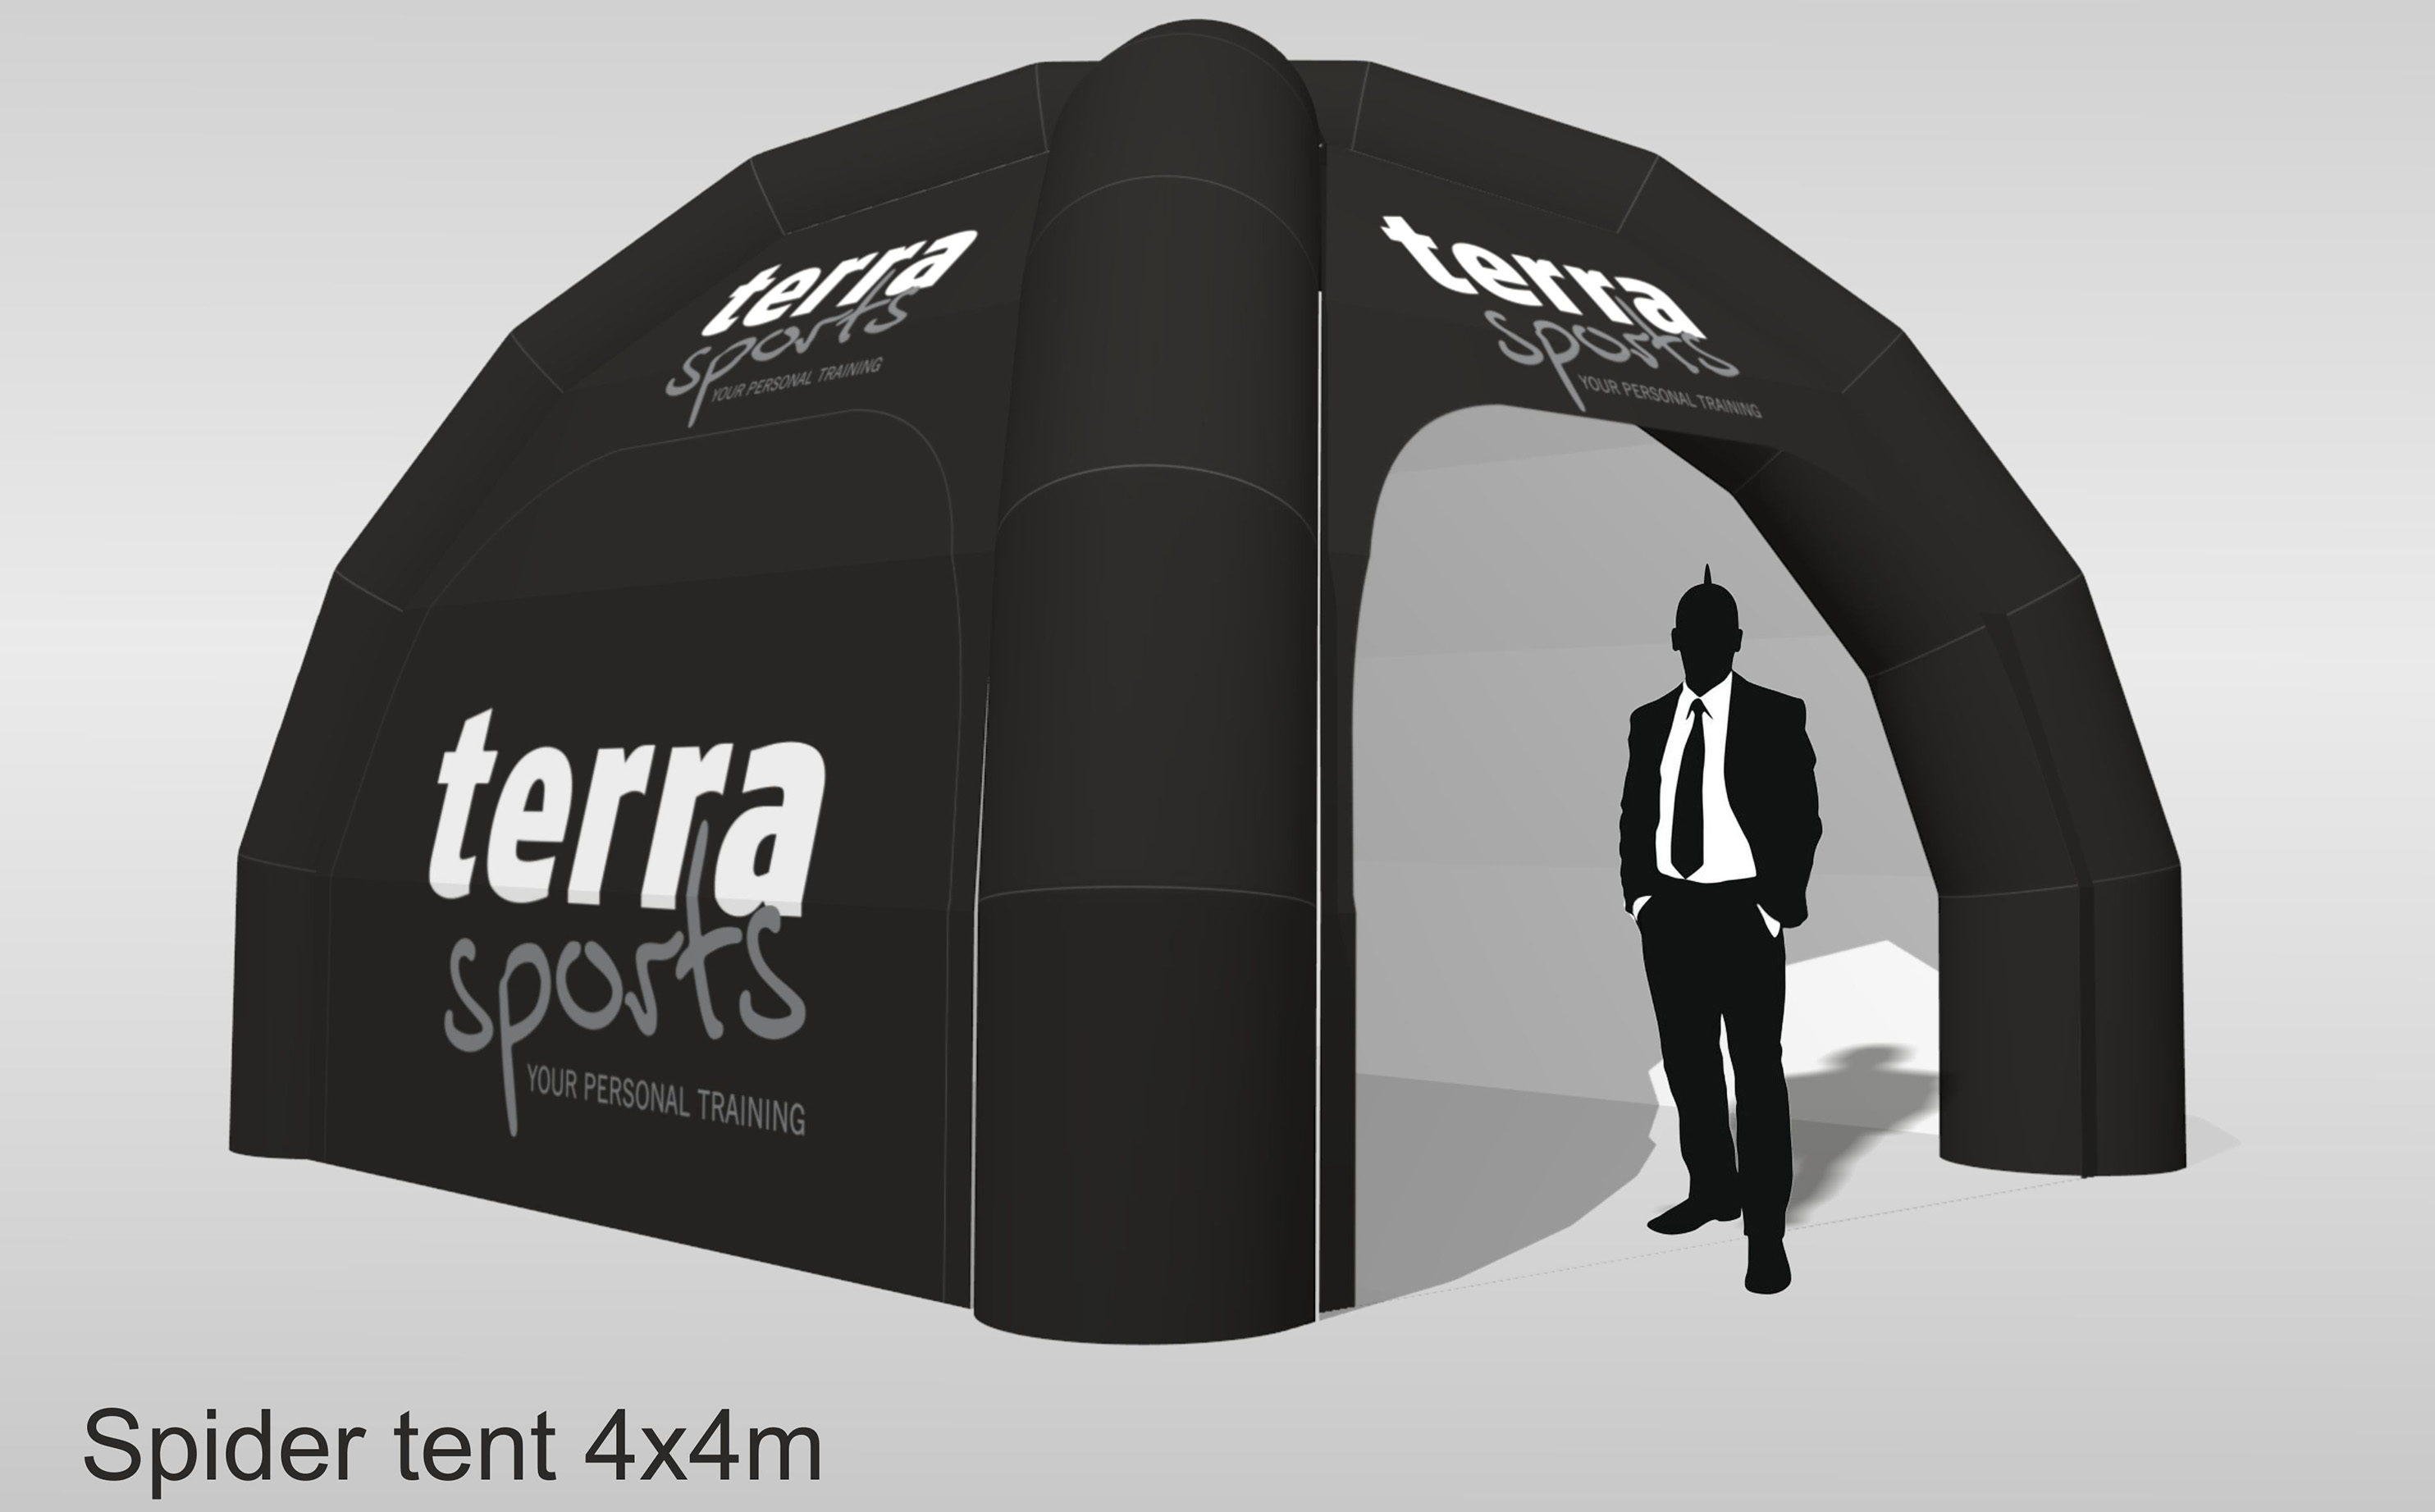 inflatable-tent-terra-sports